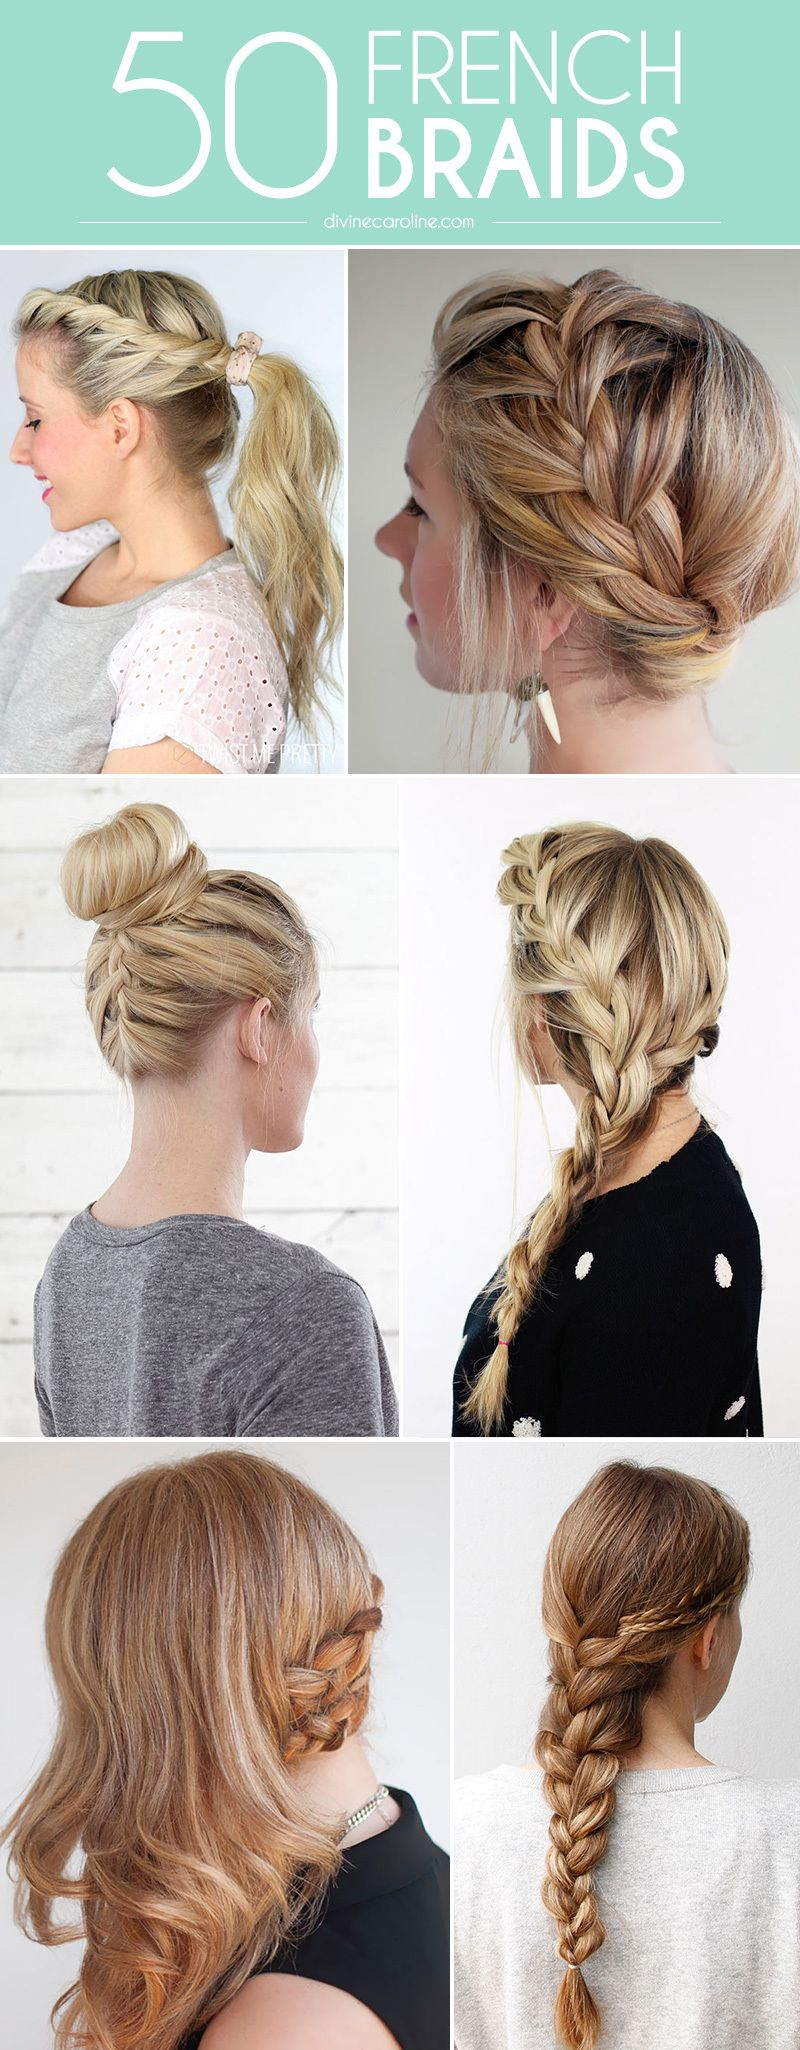 fabulous french braid hairstyles to diy hairstyles pinterest